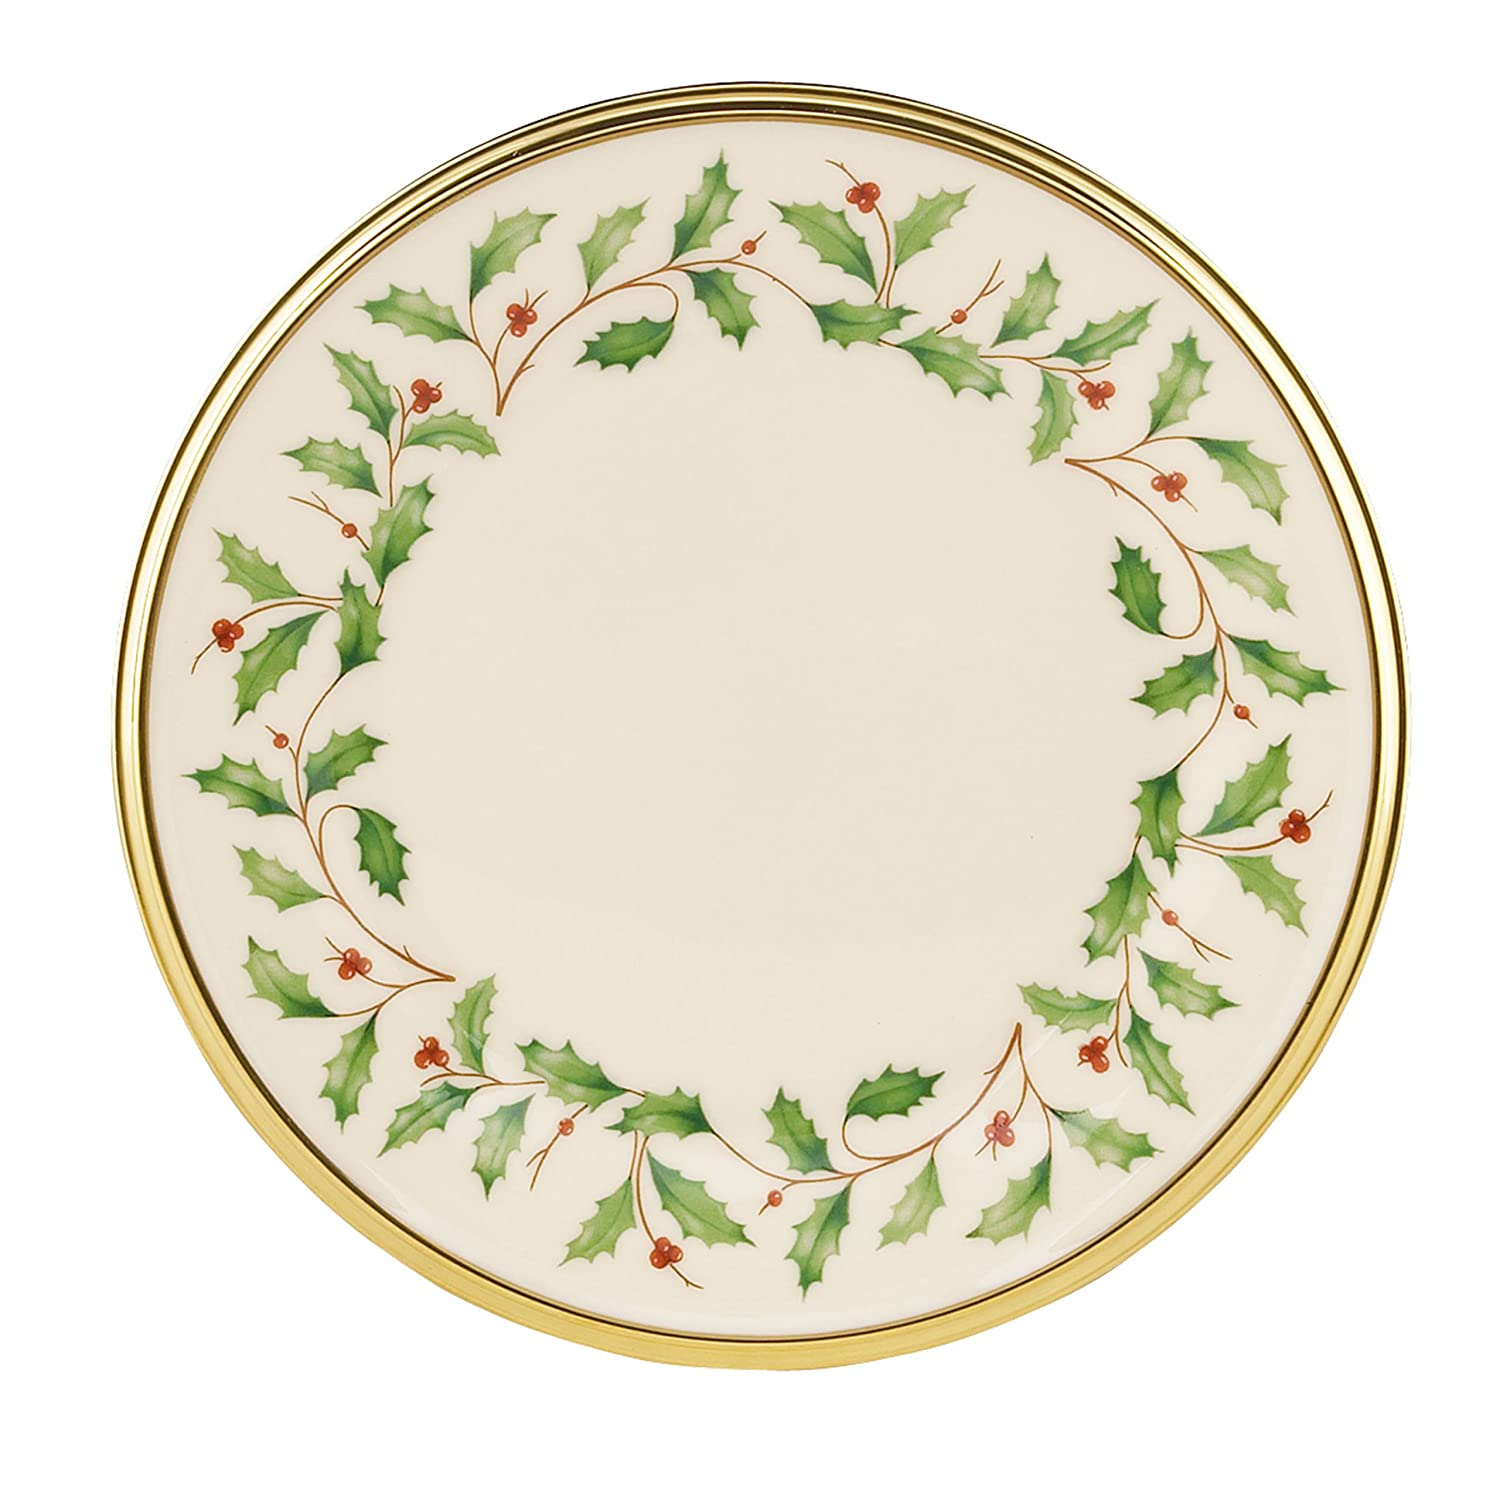 Amazon.com Lenox Holiday Bread \u0026 Butter Plate 6 Inches Lenox Holiday China Kitchen \u0026 Dining  sc 1 st  Amazon.com : lenox paper plates - pezcame.com